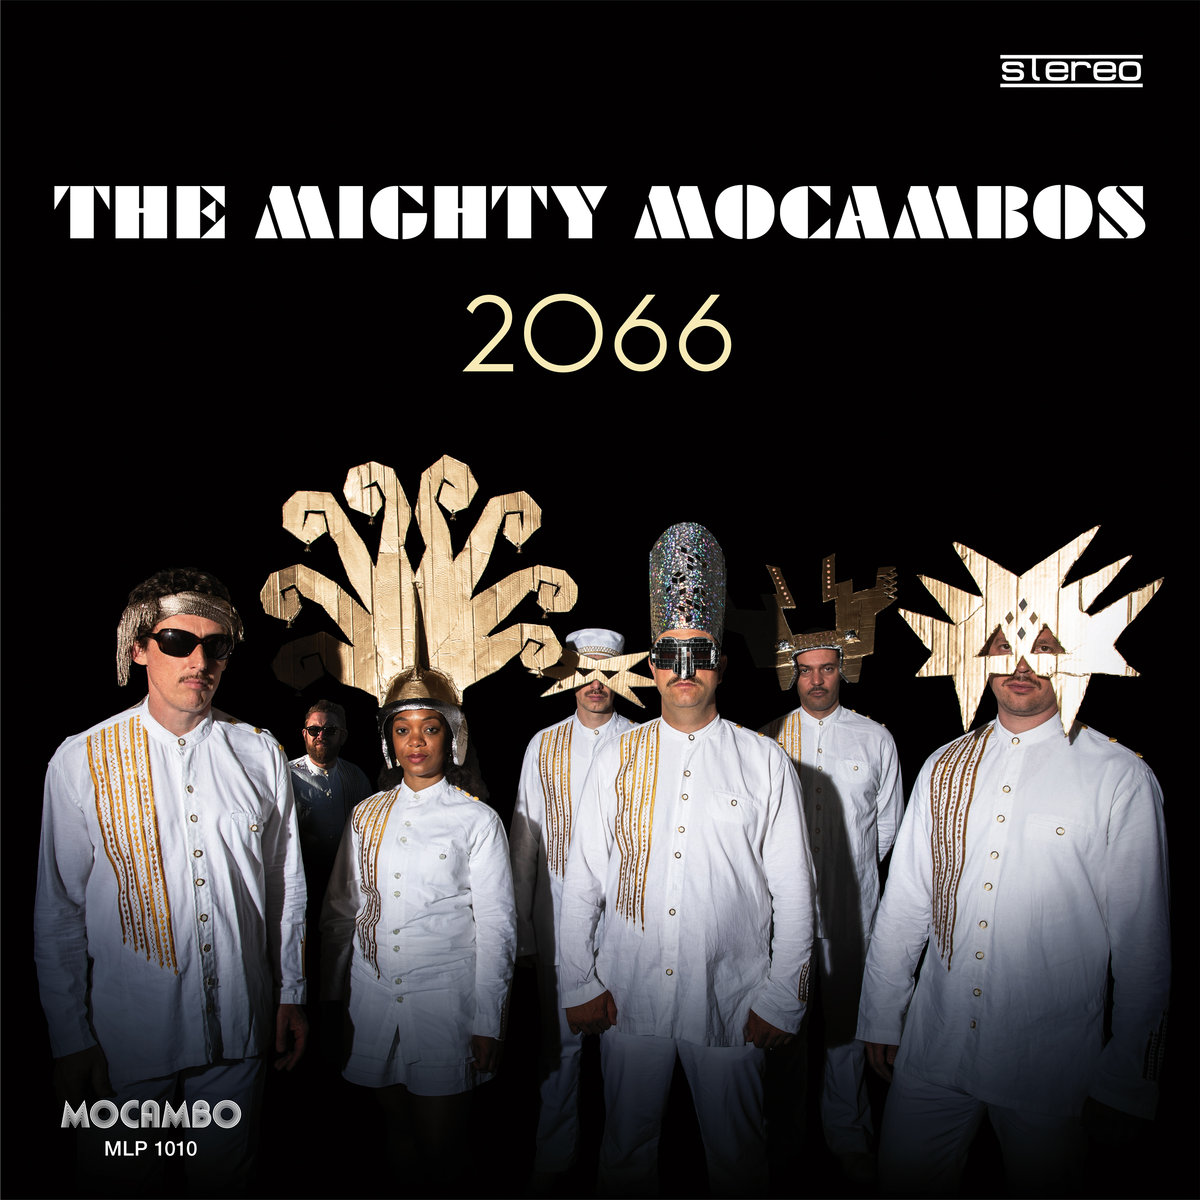 The Mighty Mocambos 2066